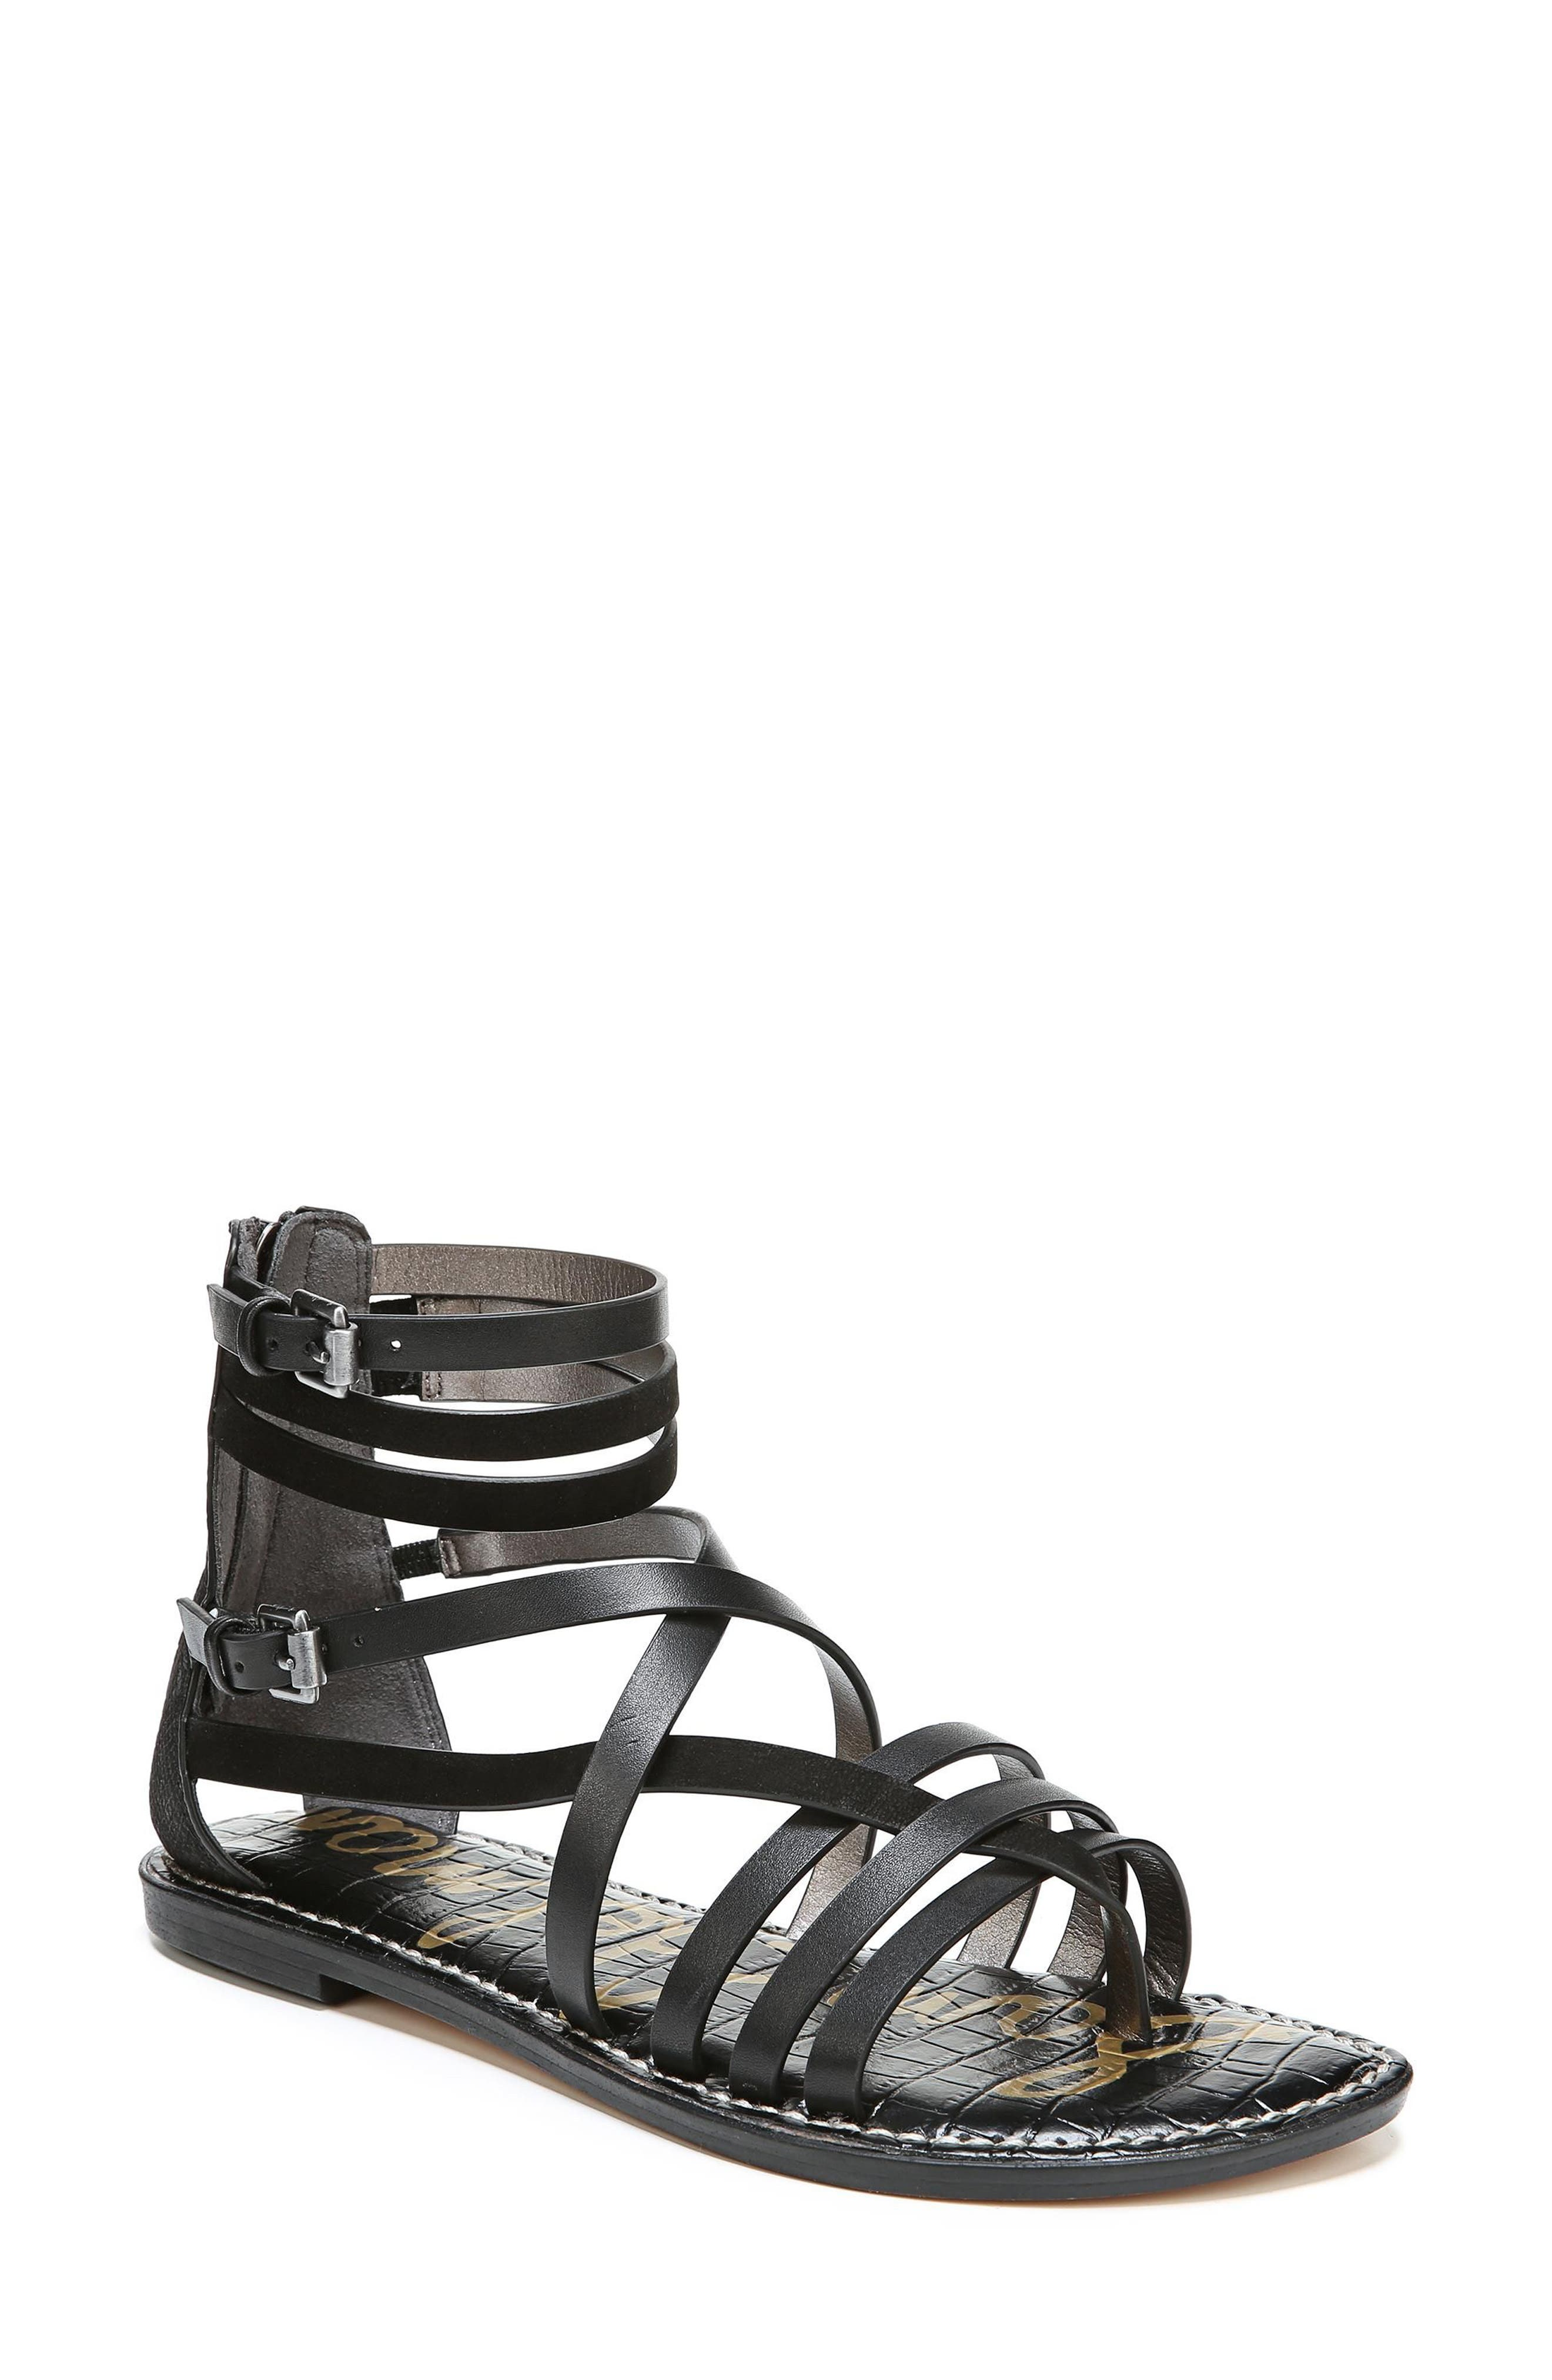 Ganesa Strappy Sandal,                         Main,                         color, 001